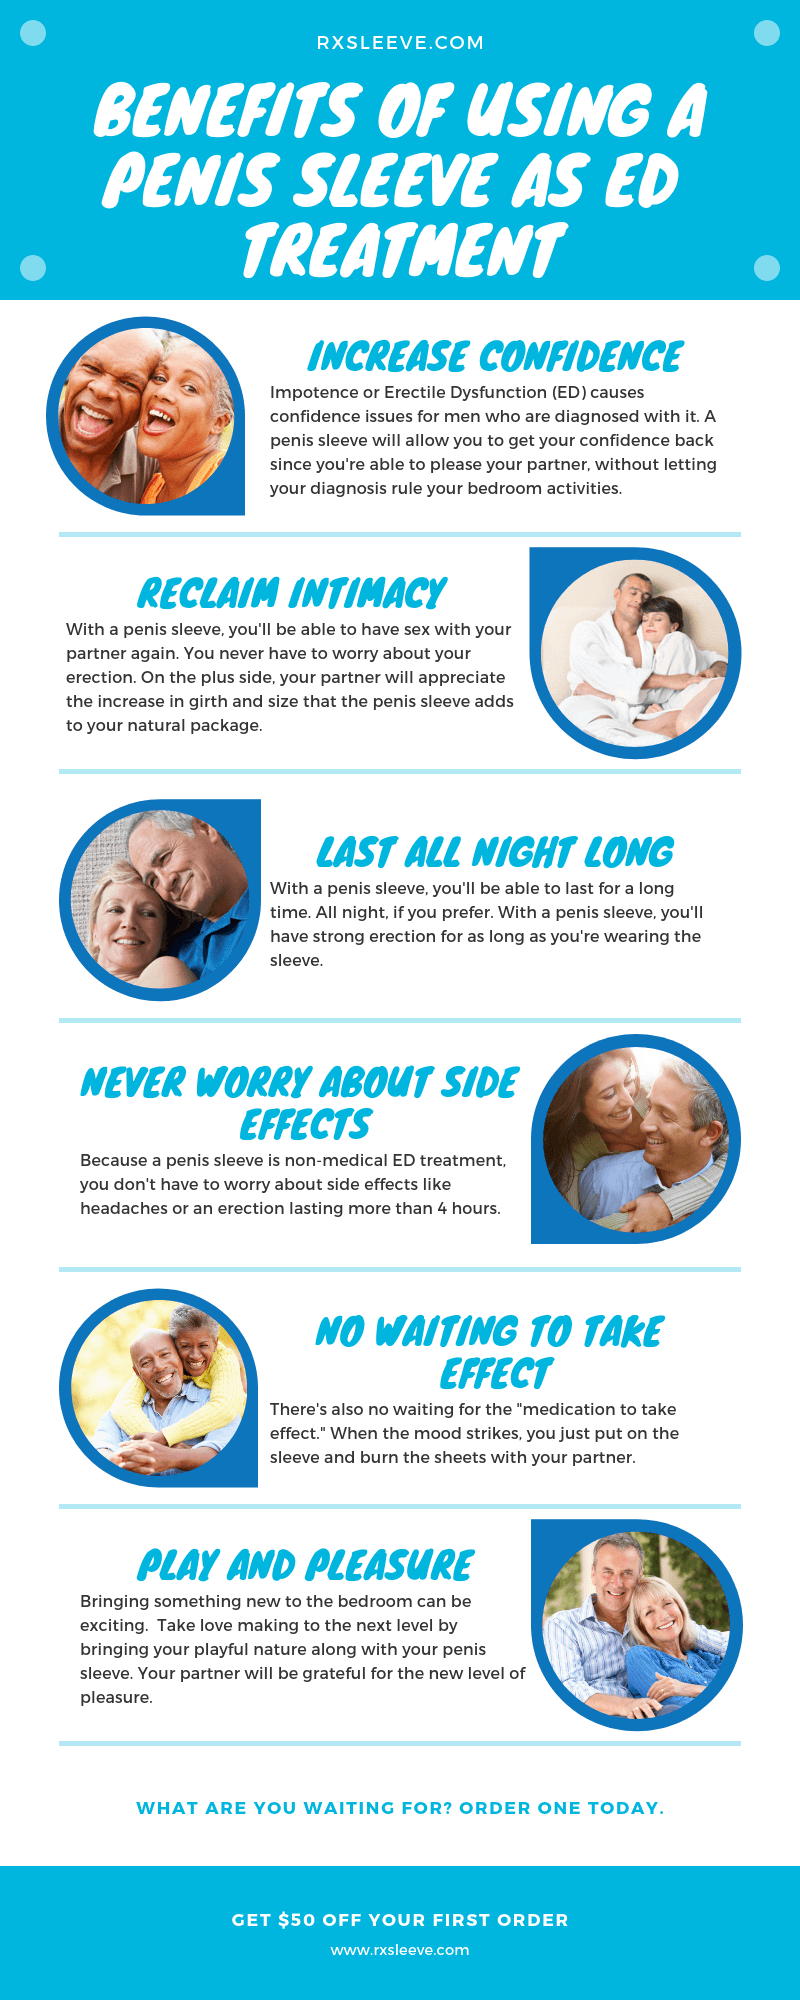 6 Benefits of Using a Penis Sleeve for ED Treatment - An Infographic